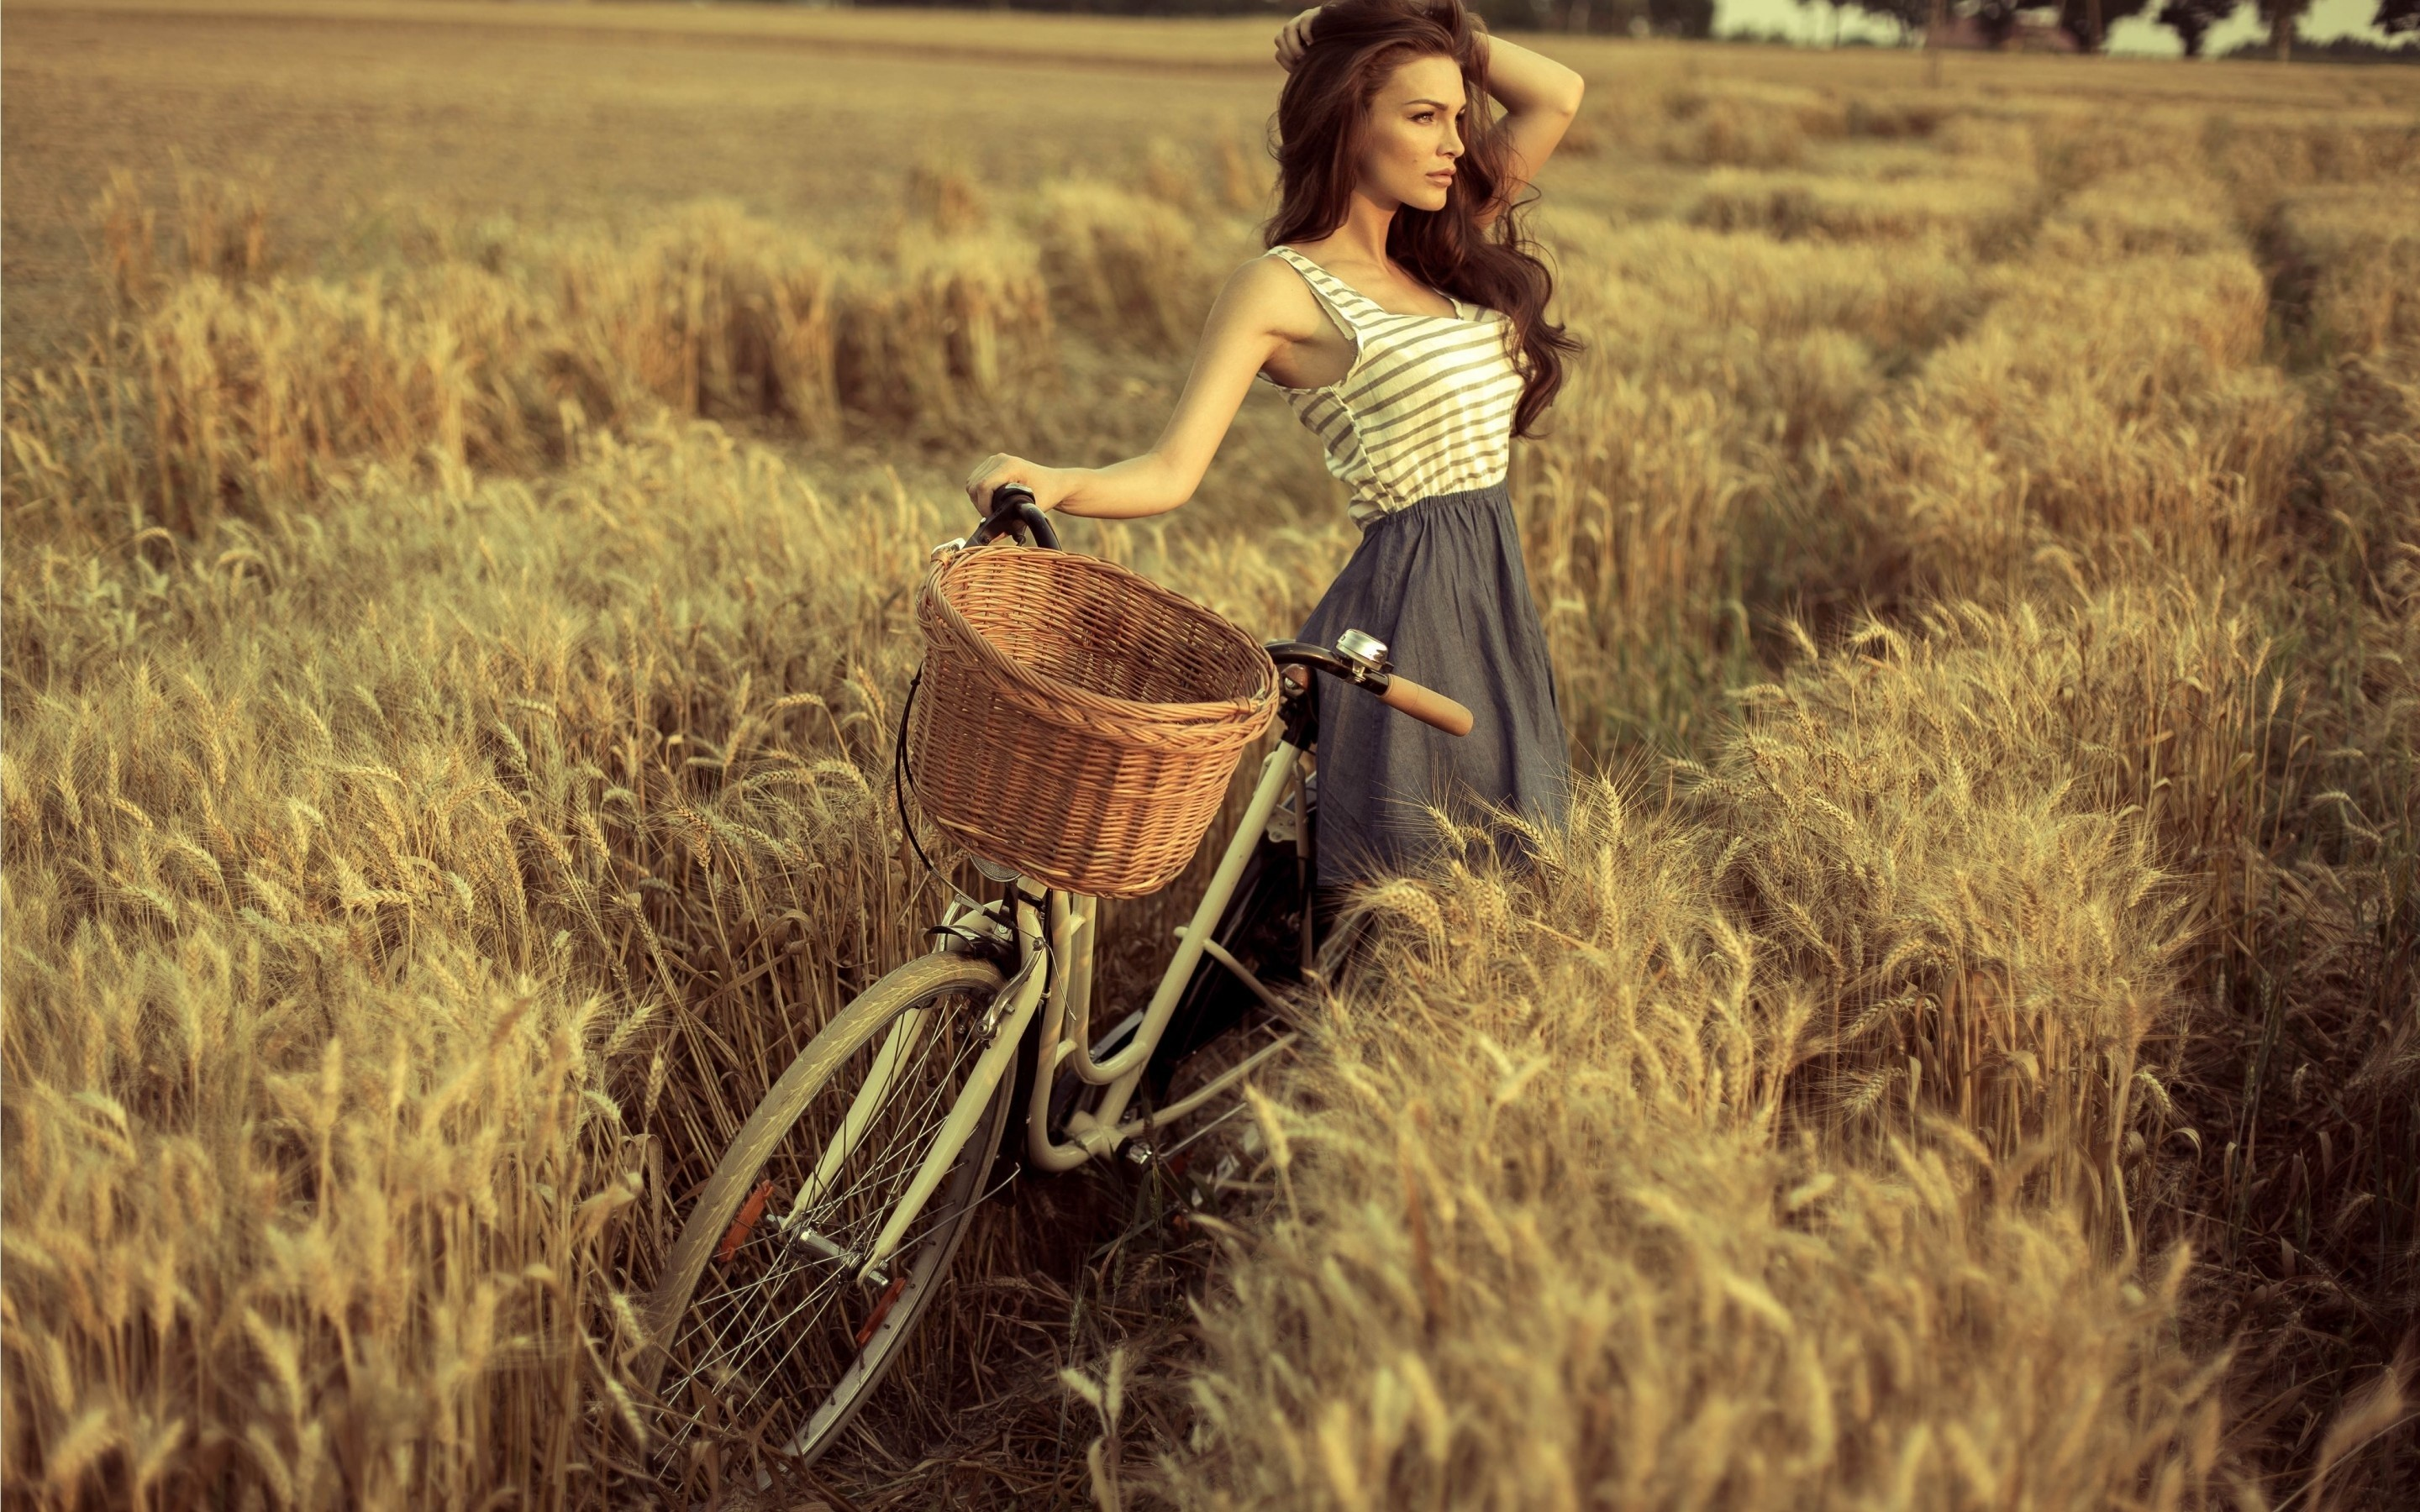 2880x1800 bicycle, girl, dress, field, brunette